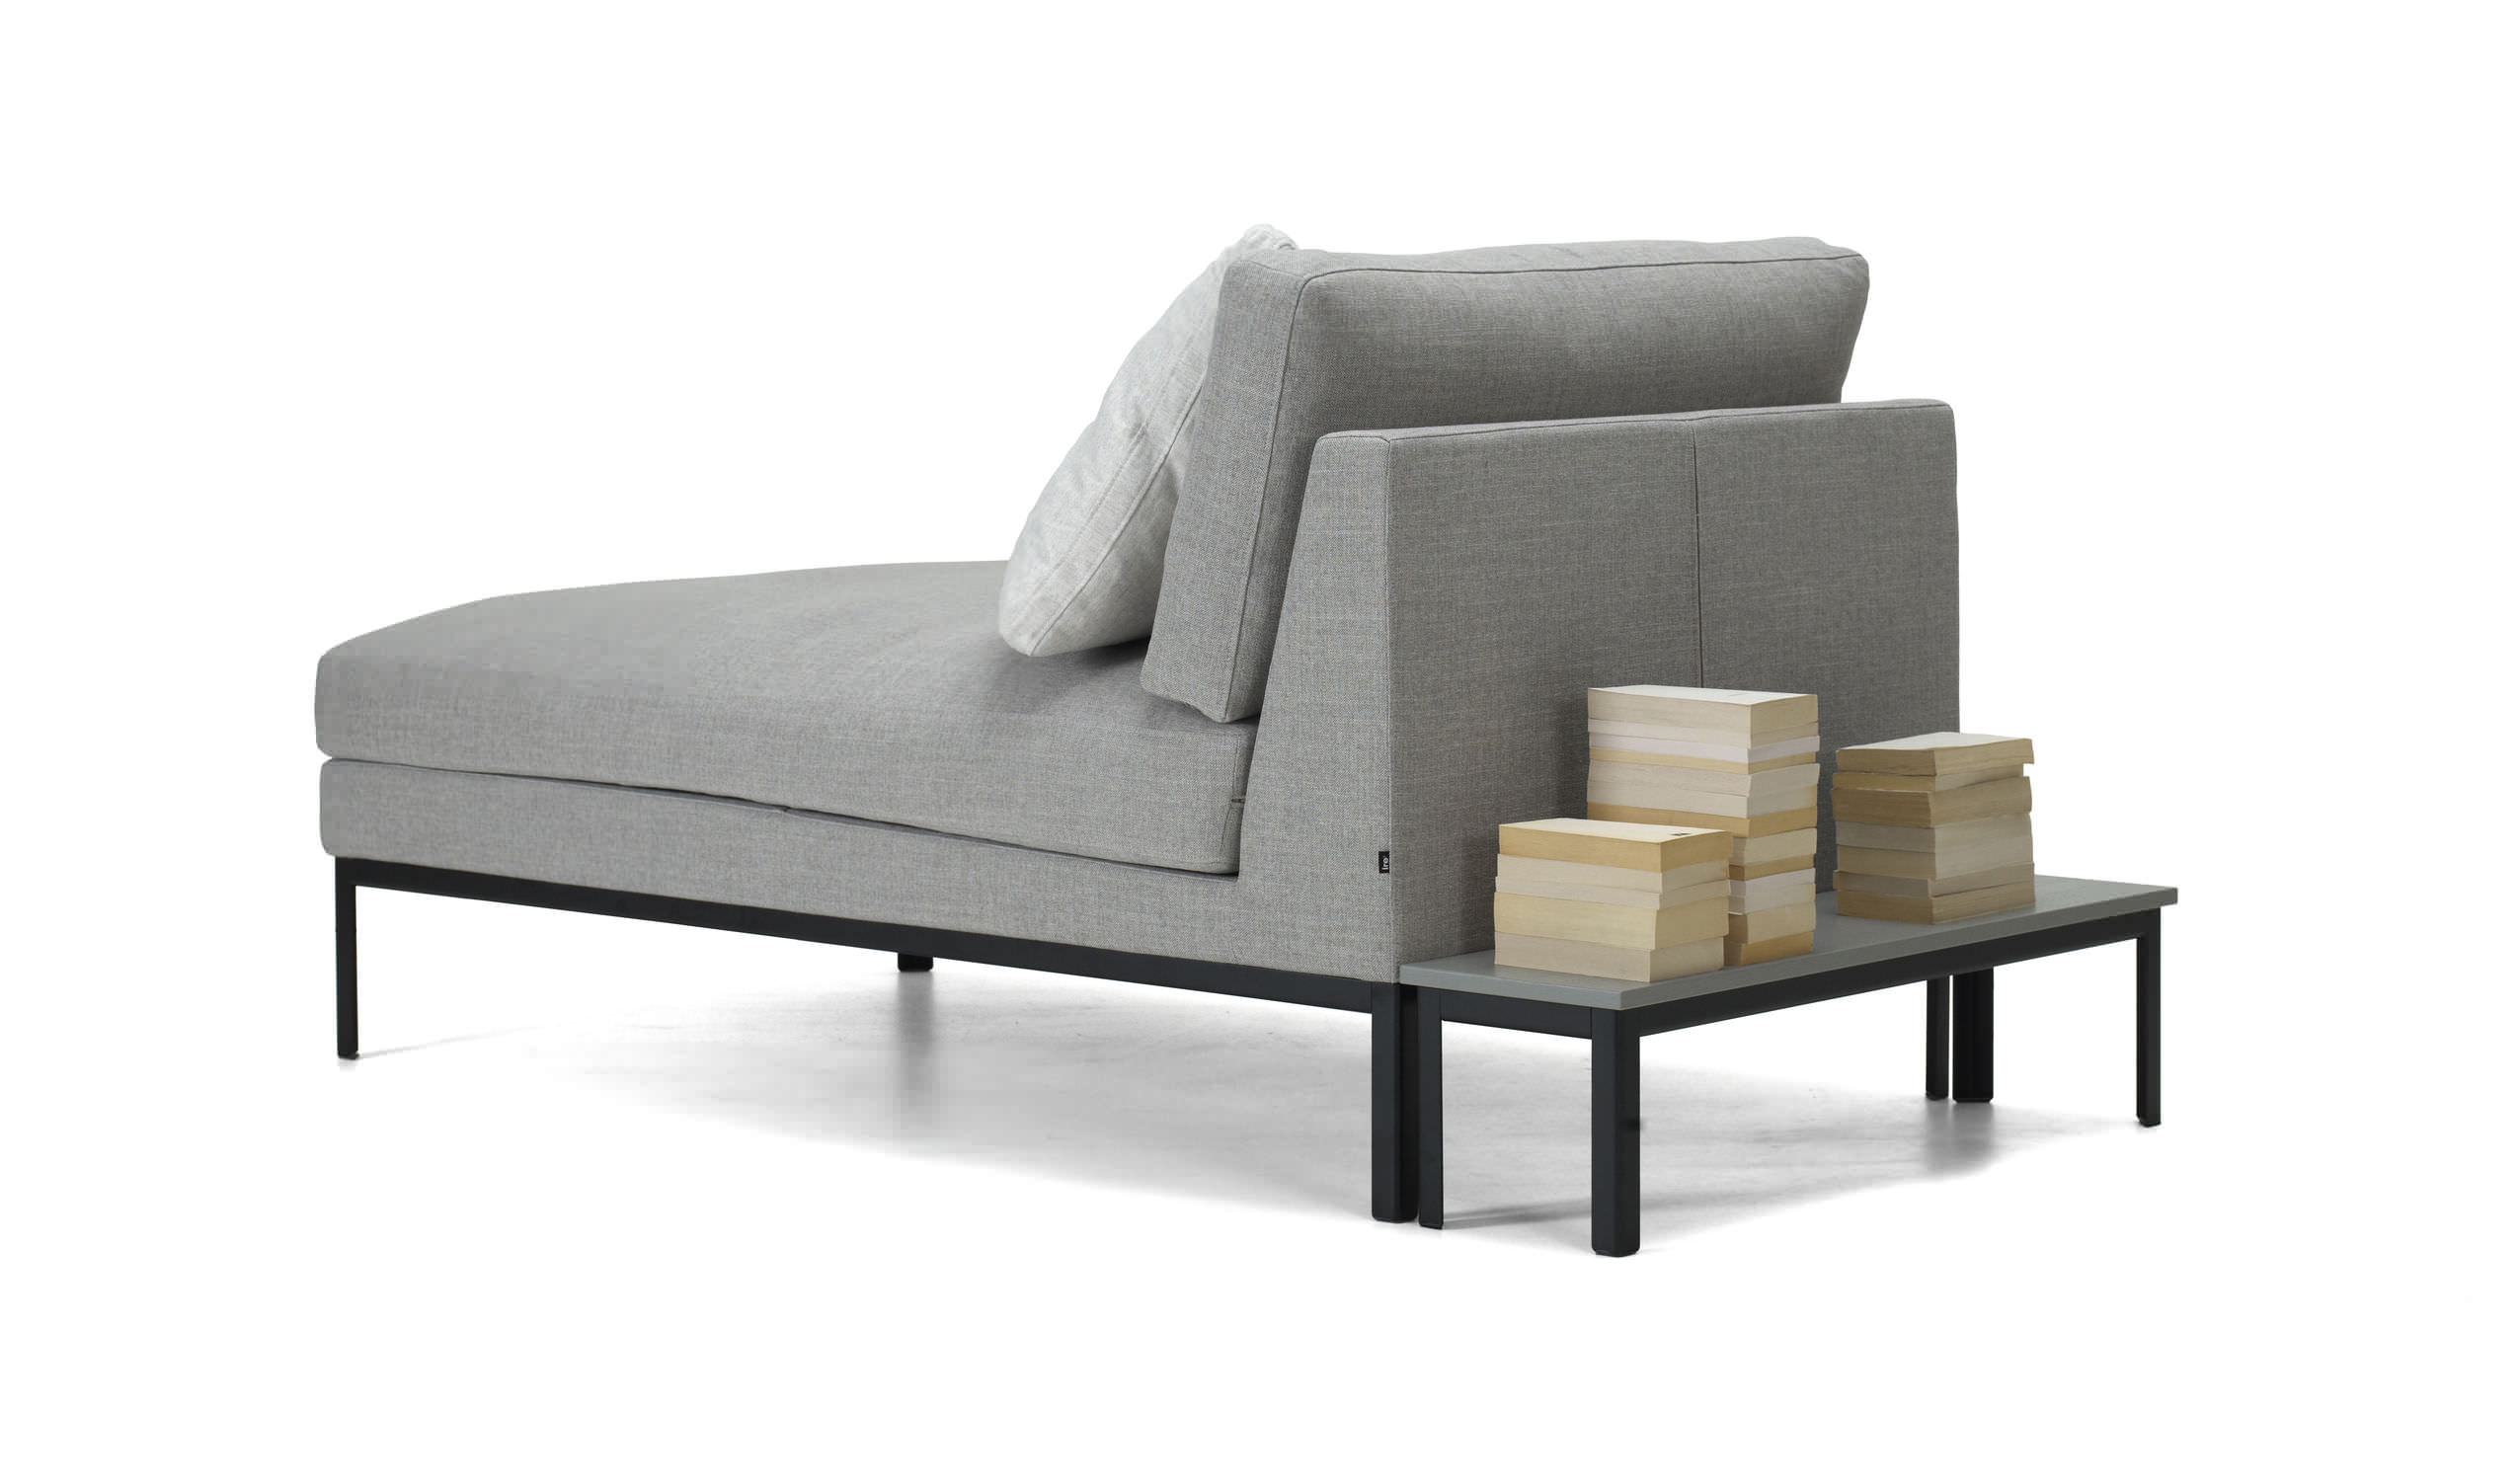 Contemporary lounge chair - JOIN by Emma Olbers - Ire Möbel AB